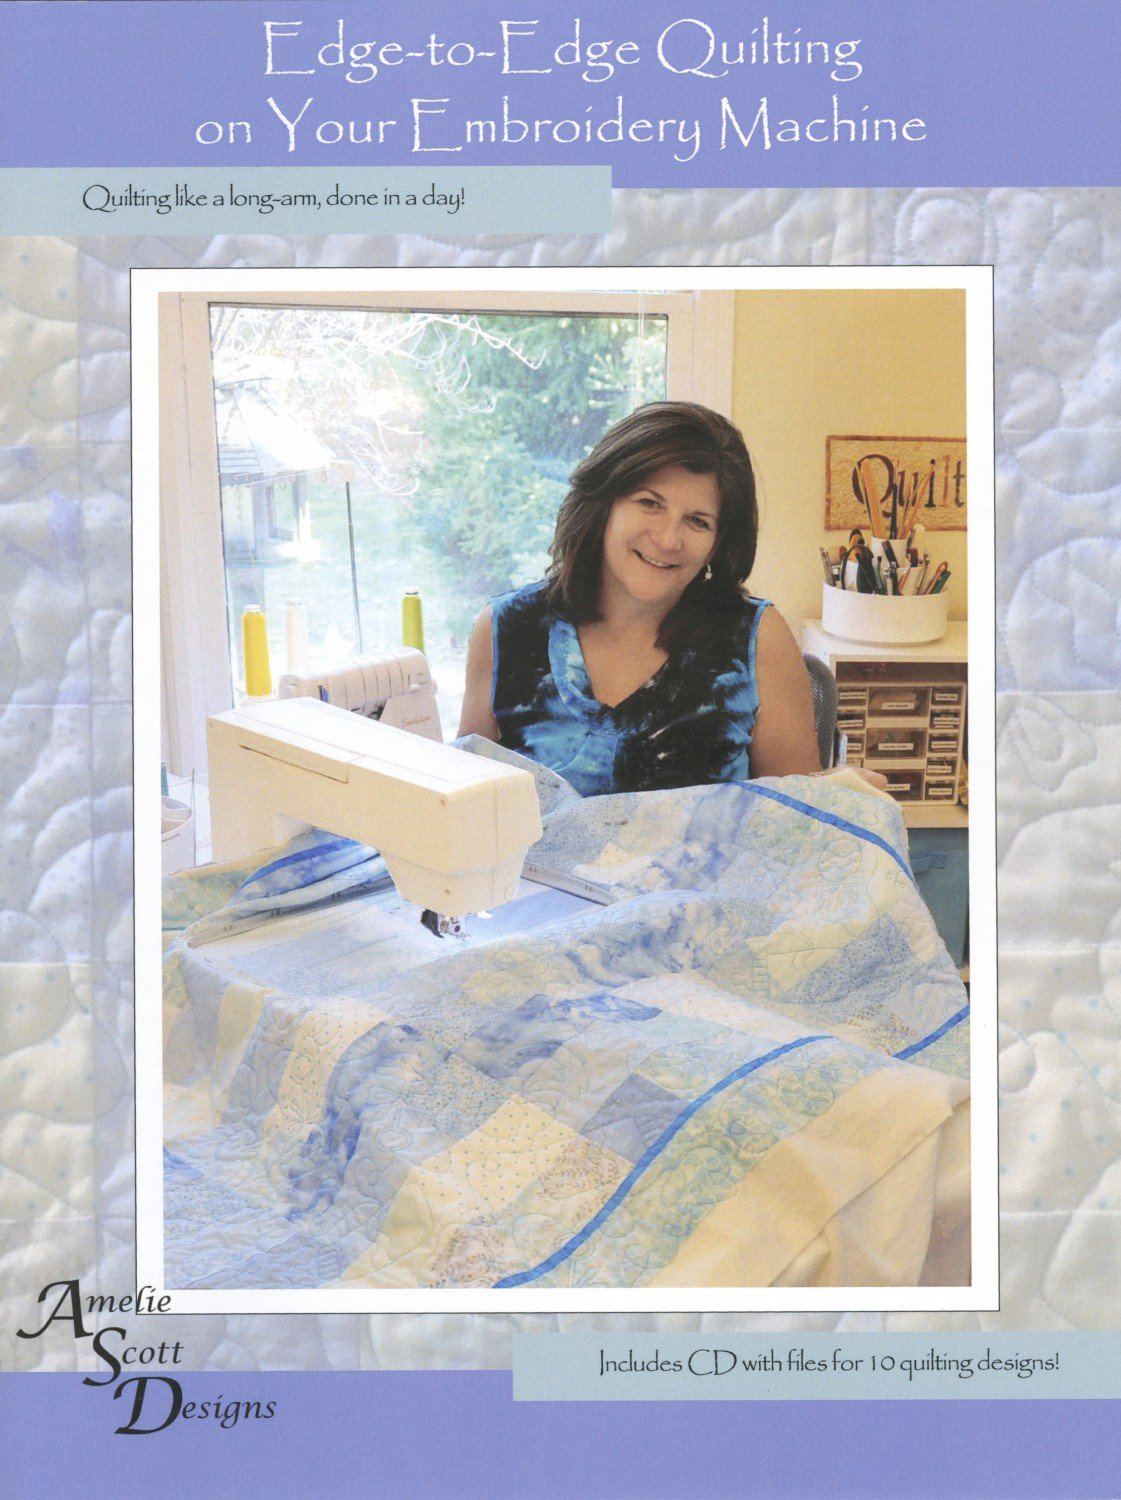 Edge-to-Edge Quilting on your Embroidery Machine Book - Softcover